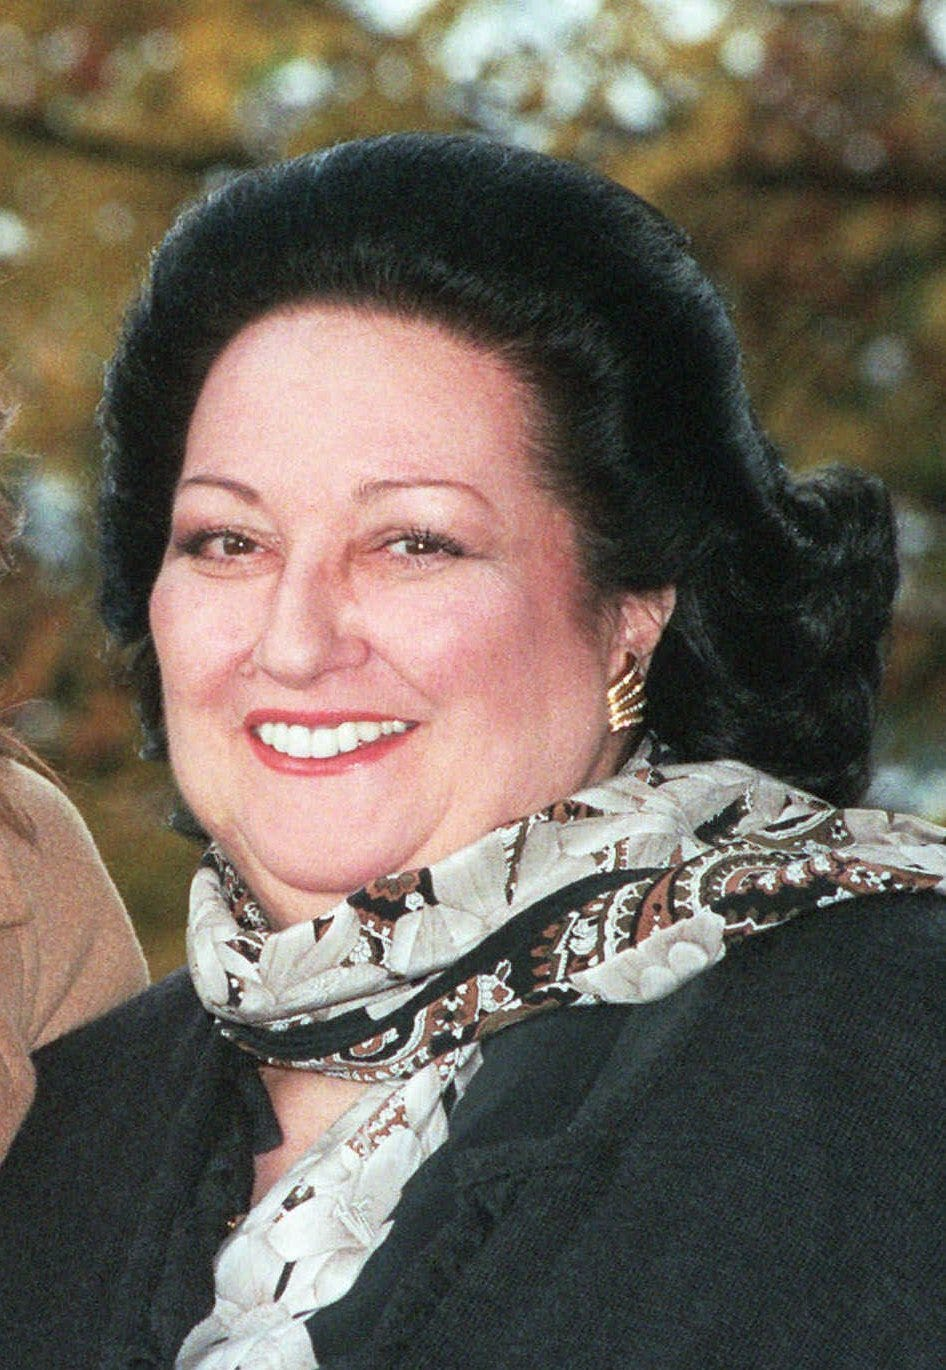 The whole world is crying: Spanish doctors have not saved the opera diva Montserrat Caballe after a long struggle with a serious illness